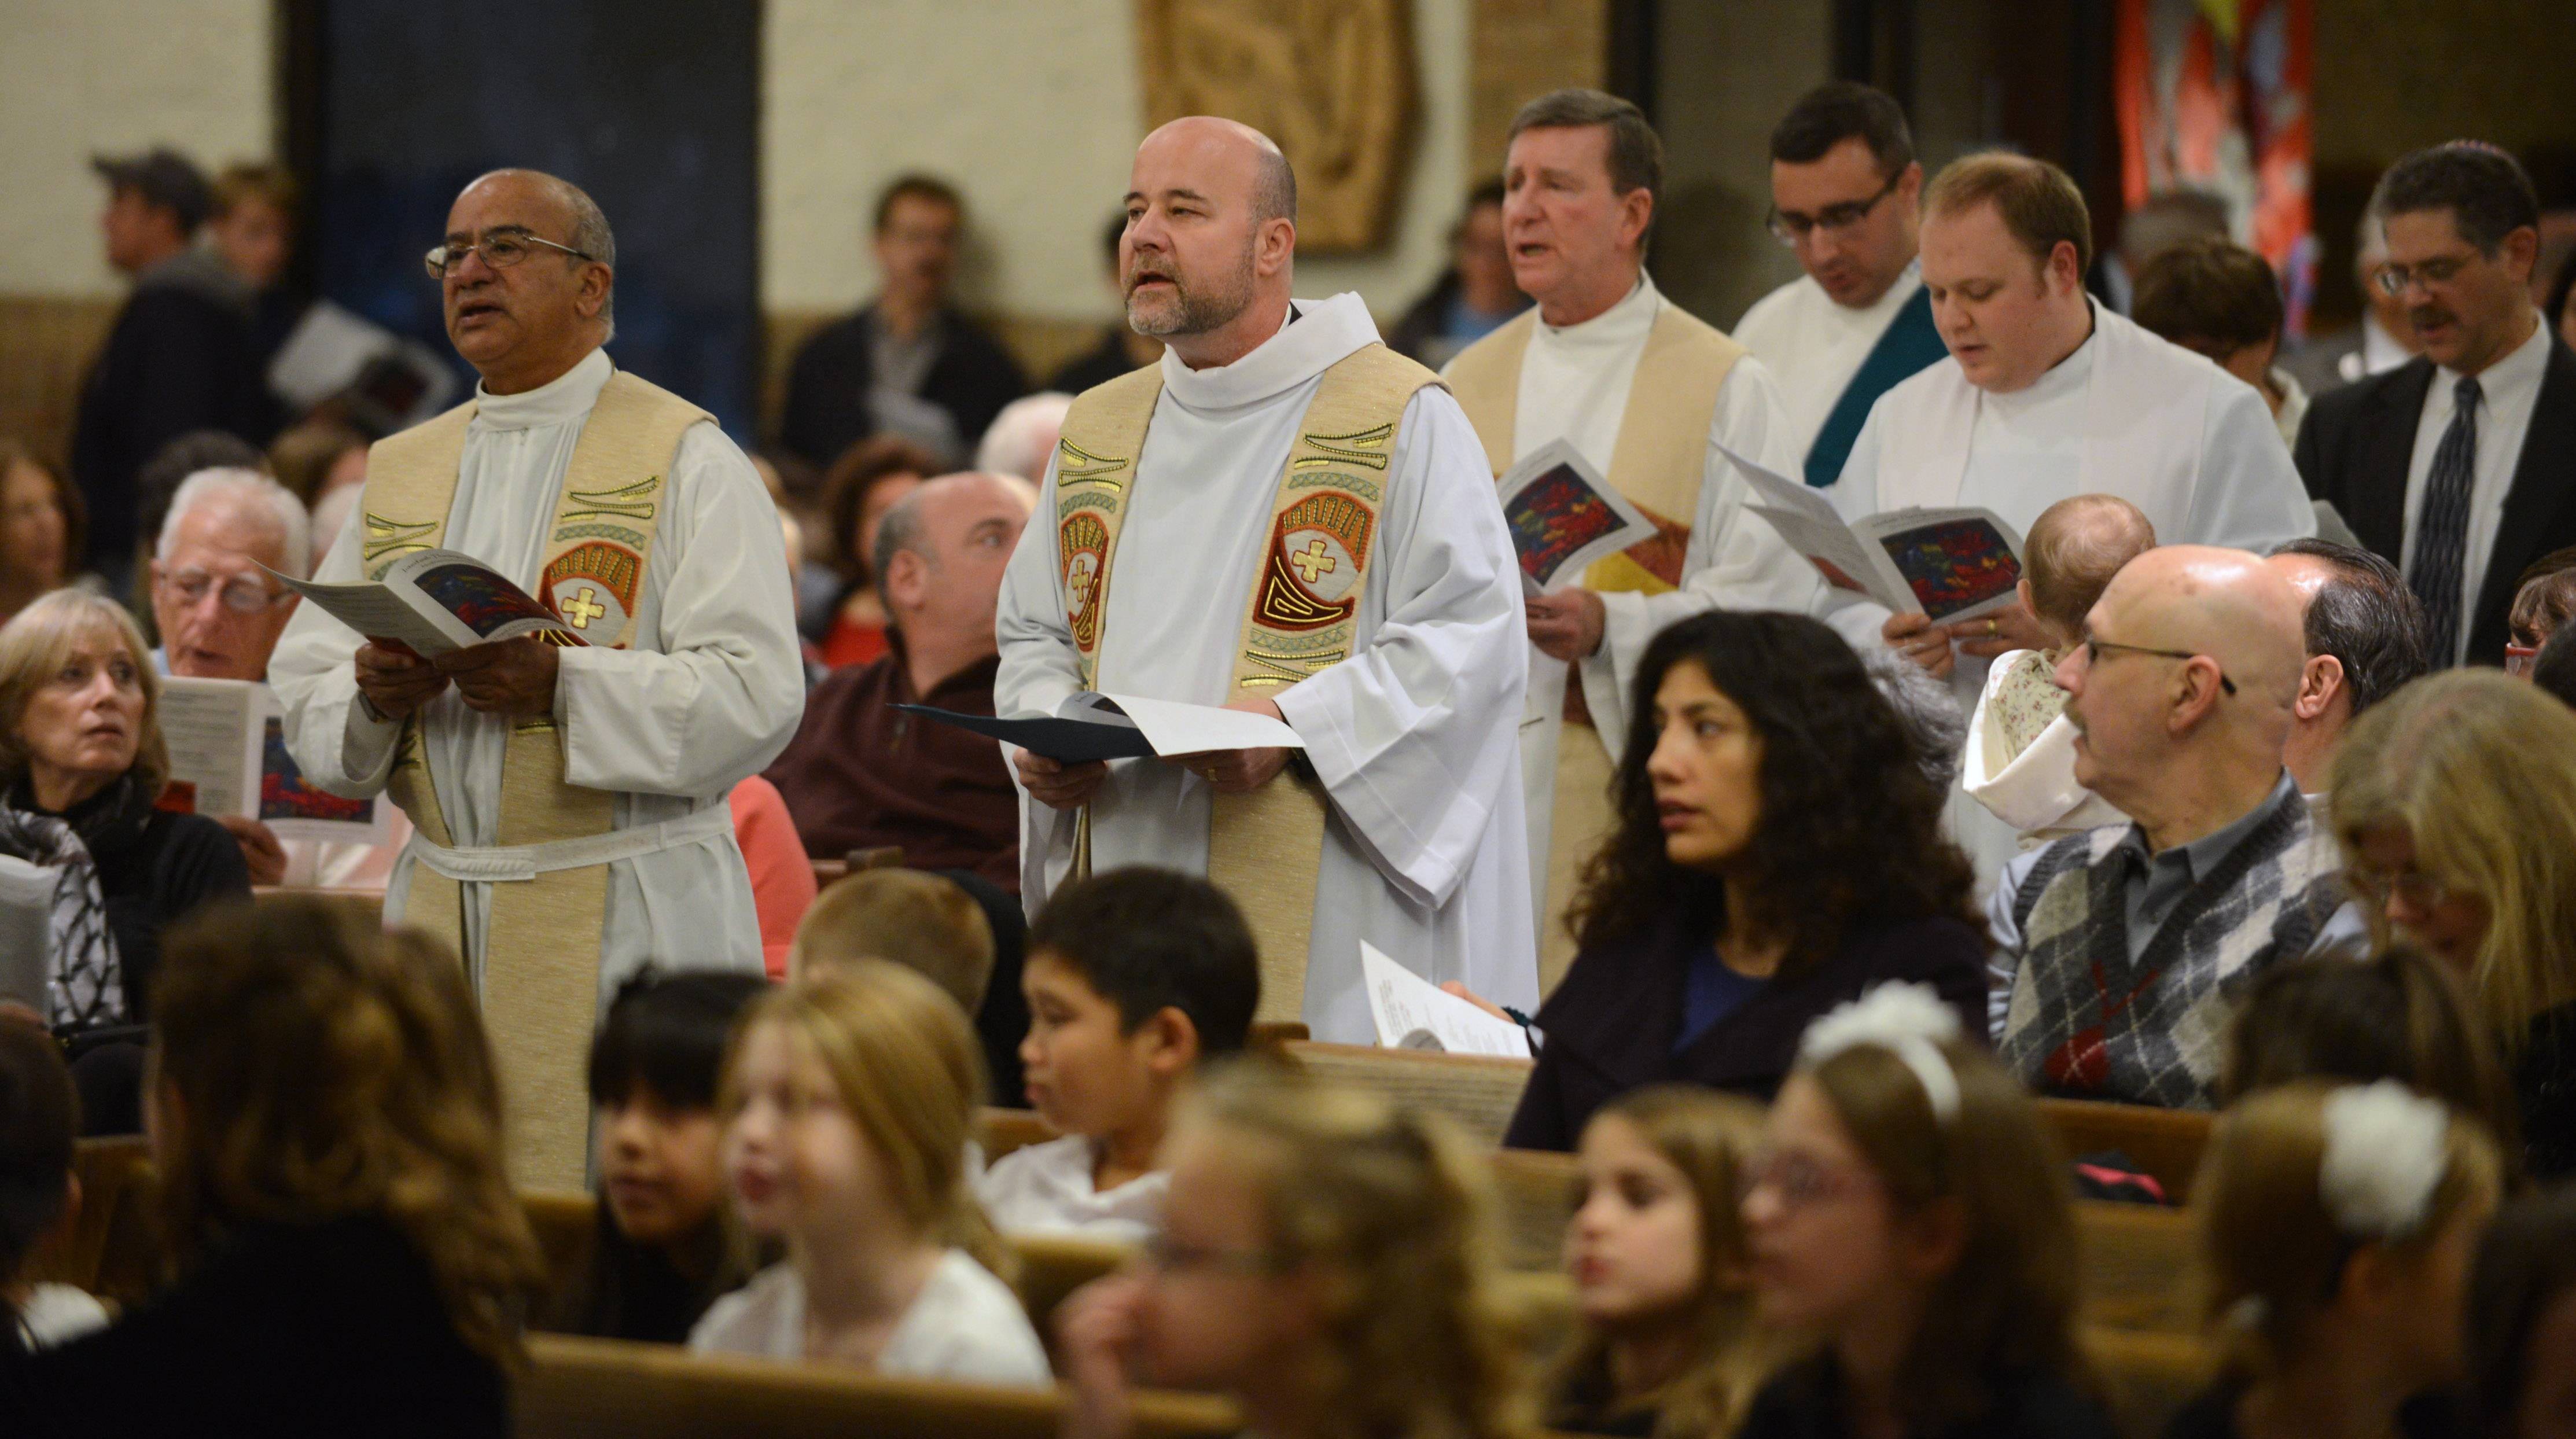 Fr. Dan Whiteside, pastor of St. Mary Church, front right, leads the processional during the Northwest Suburban's 24th annual interfaith celebration at St. Mary Catholic Church in Buffalo Grove Sunday evening.